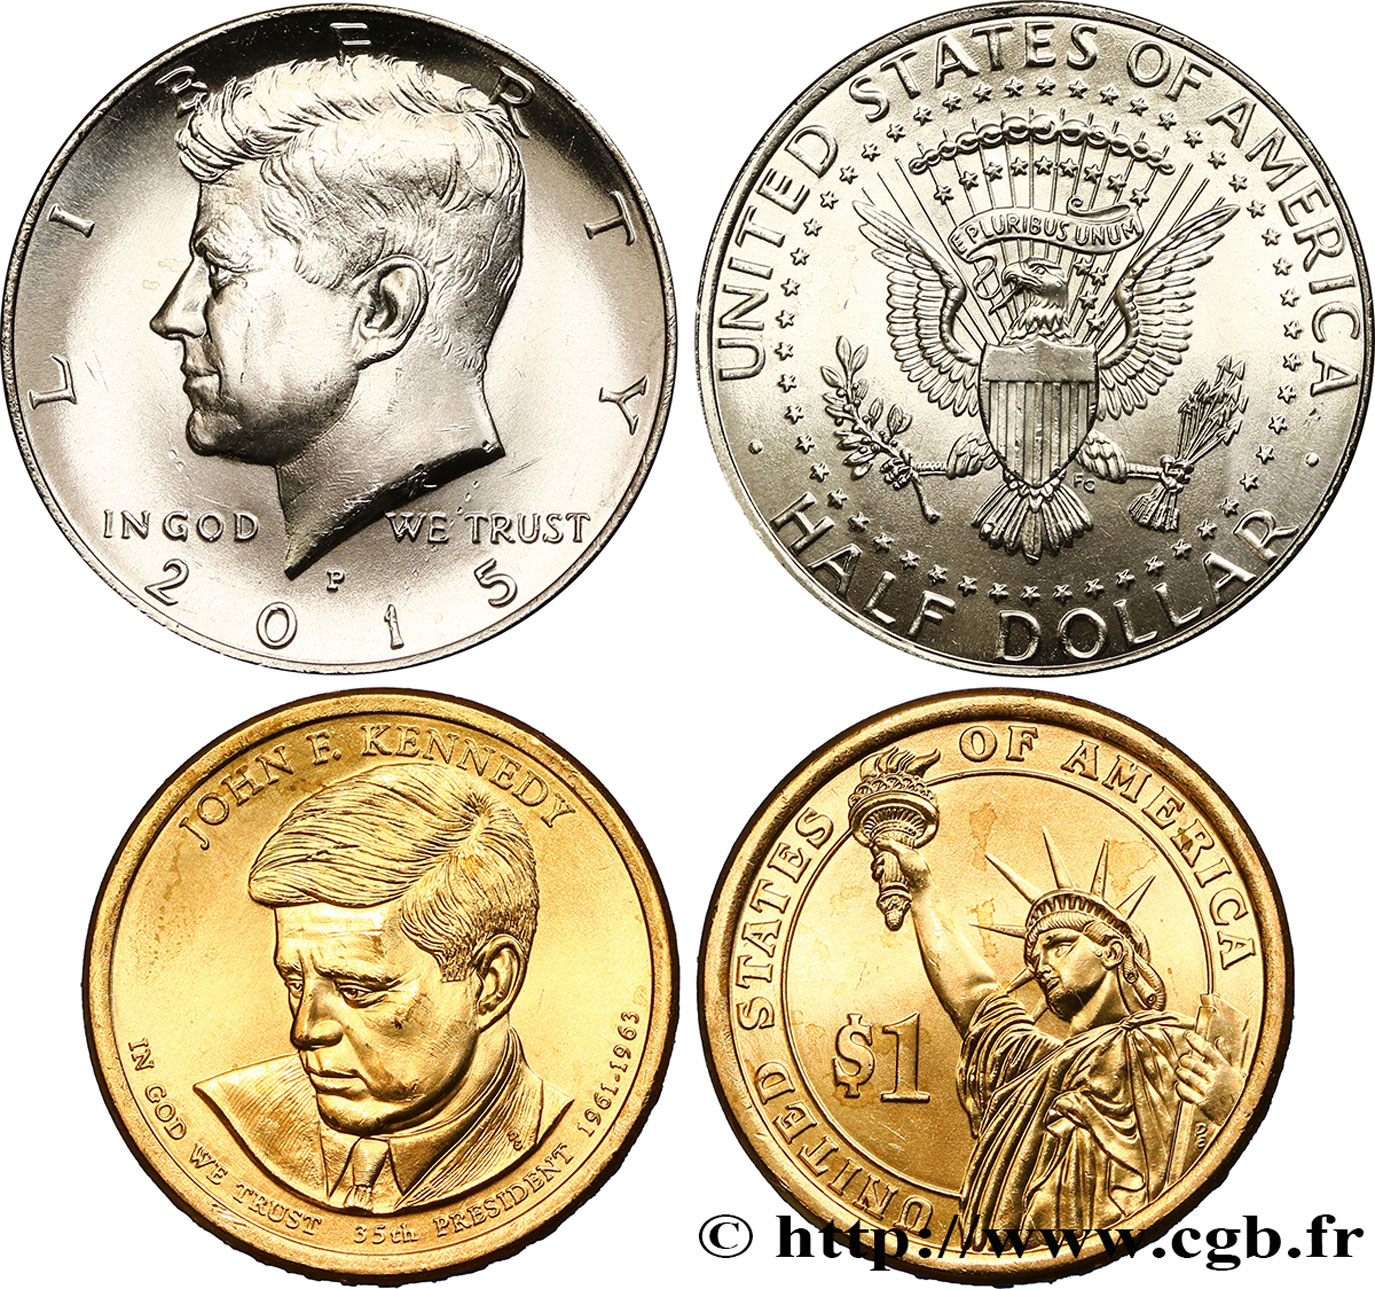 UNITED STATES OF AMERICA Lot de deux monnaies 1 Dollar John F. Kennedy 2015 Philadelphie - P MS